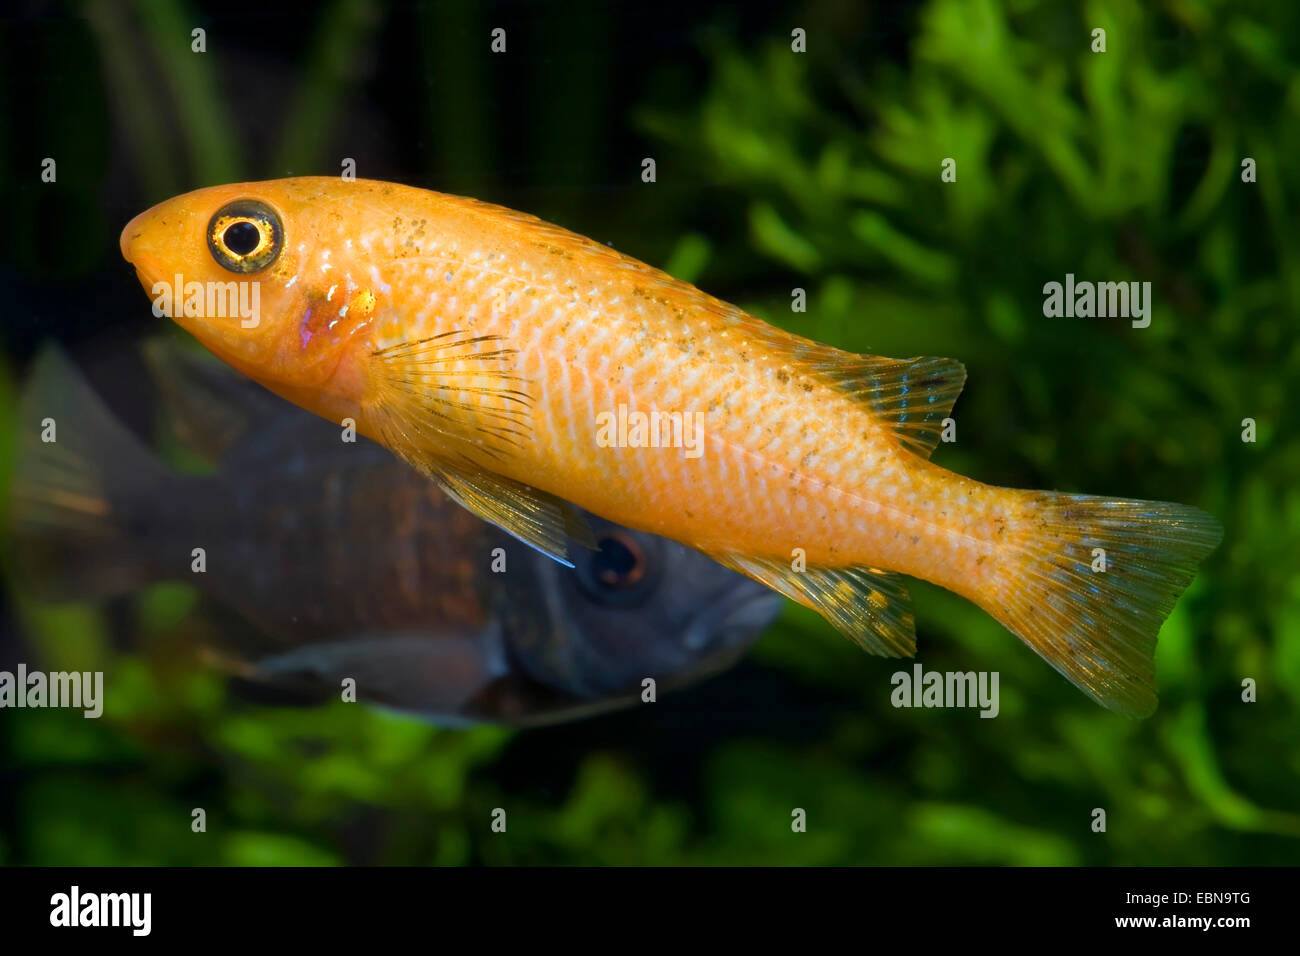 Scrapermouth mbuna (Labeotropheus trewavasae), female Stock Photo